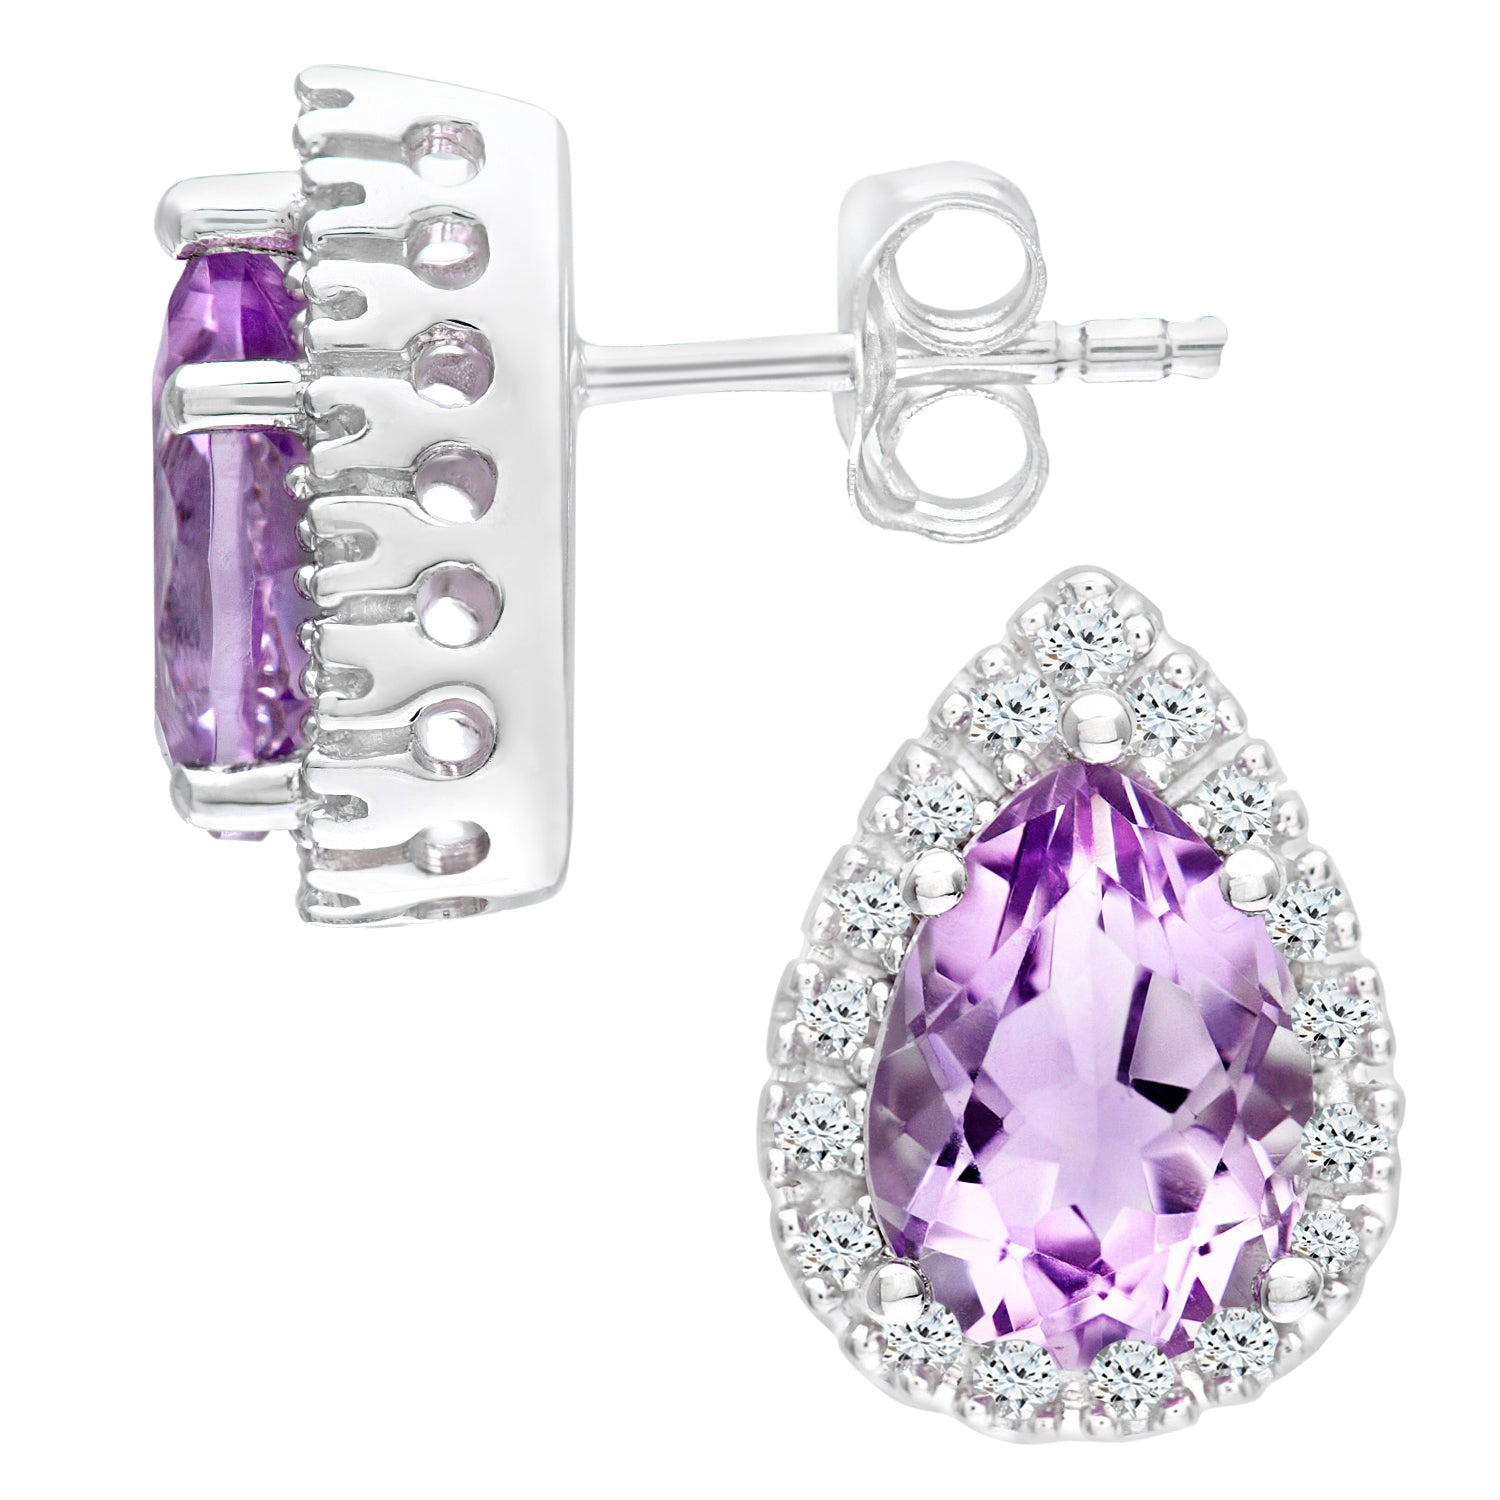 Simplicity Pear Shaped Amethyst and Diamond Halo Stud